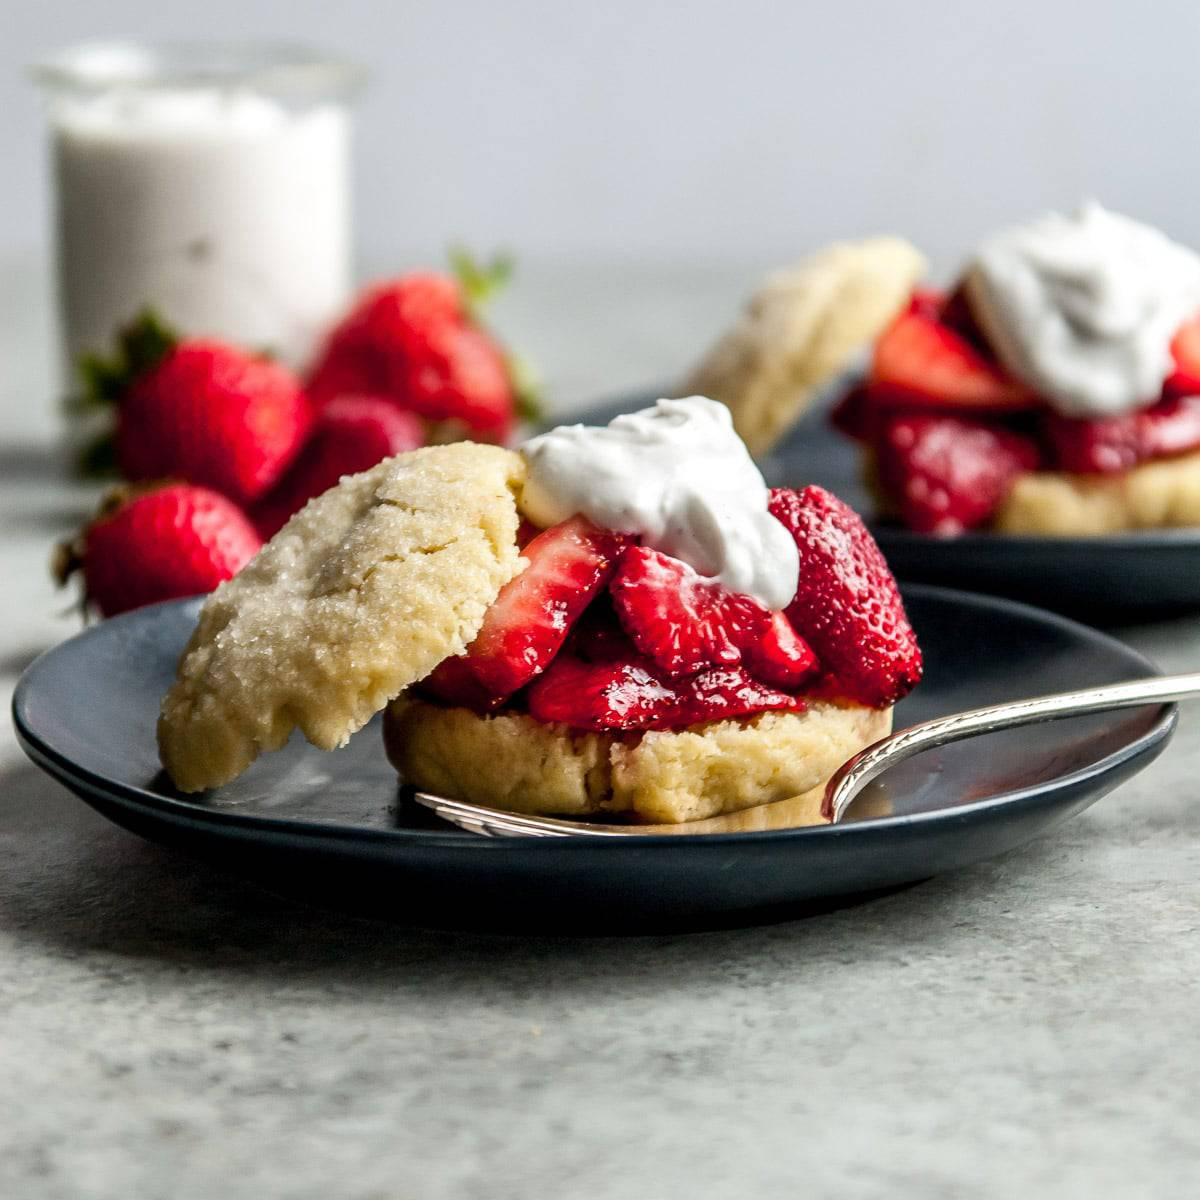 strawberry shortcake on a plate with a fork and whipped coconut cream in the background